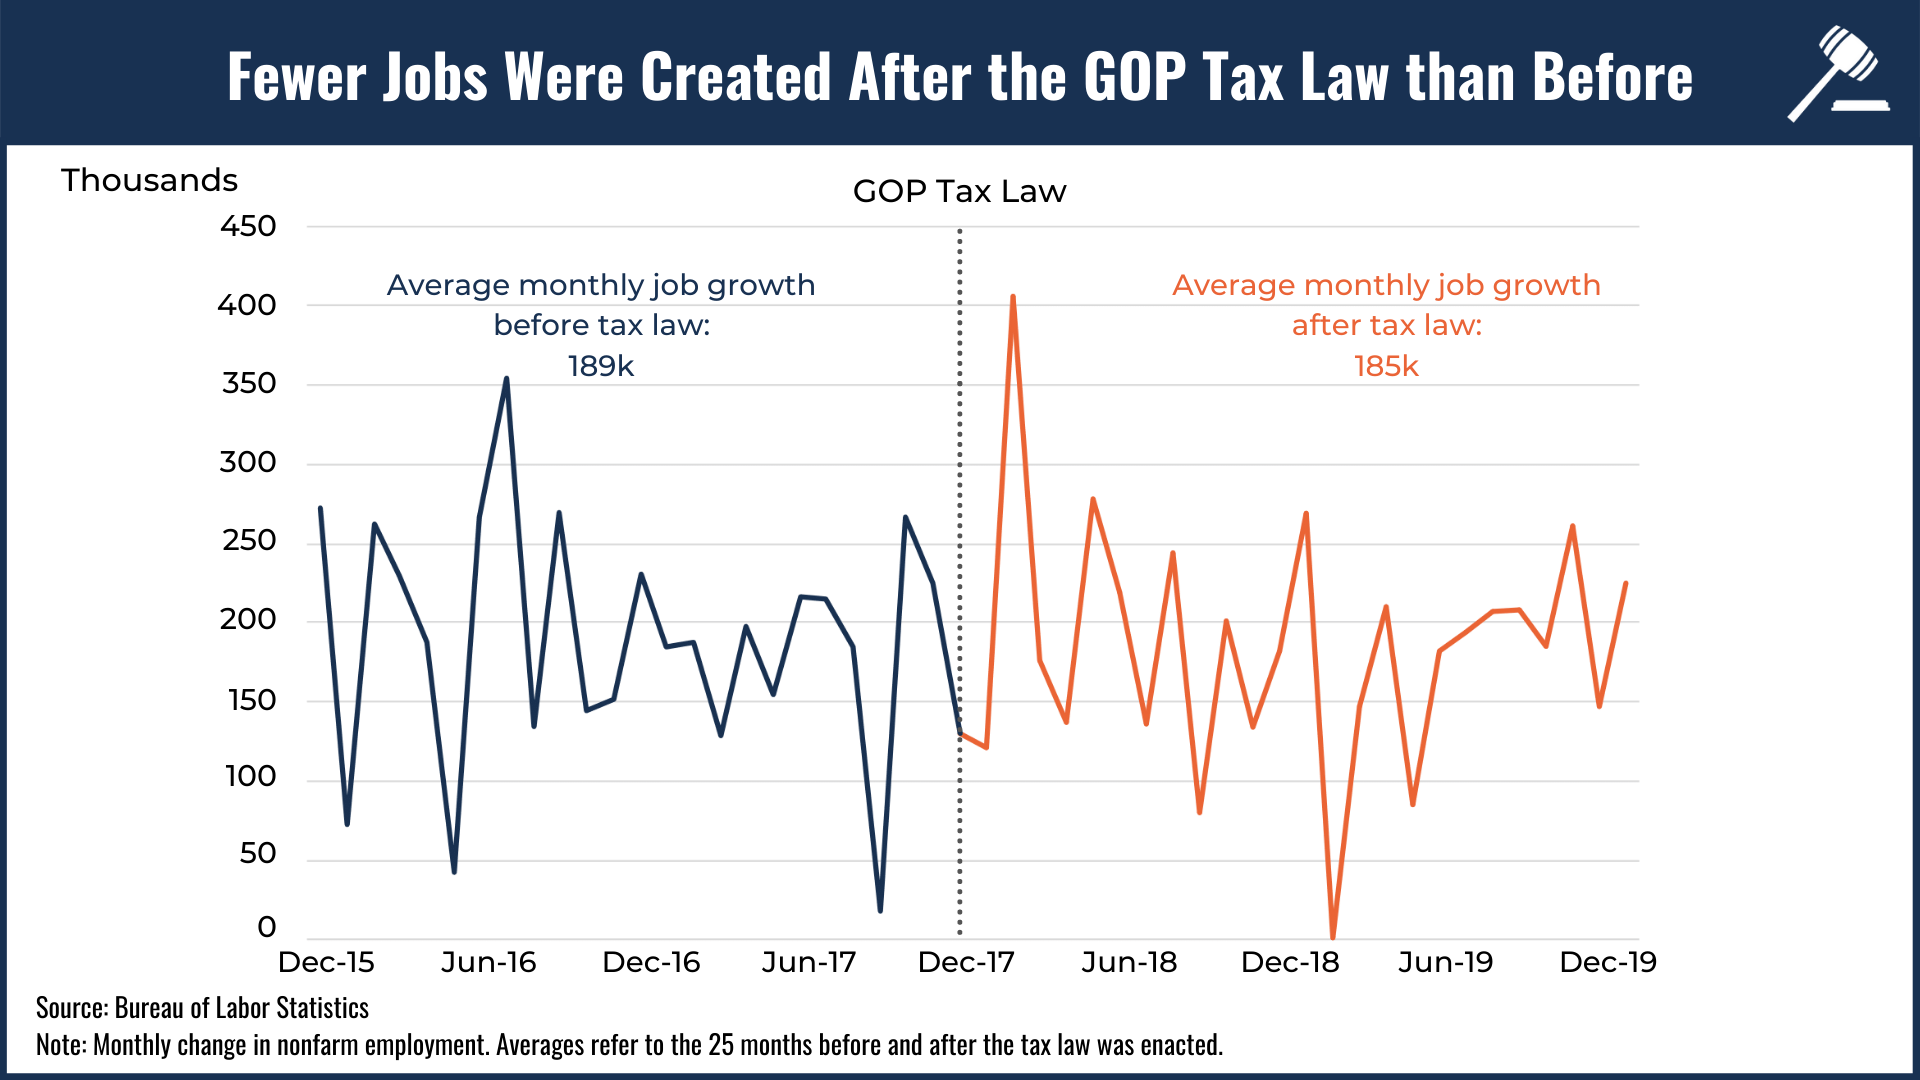 Line graph showing how fewer jobs were created after the GOP tax law than before it was signed into law